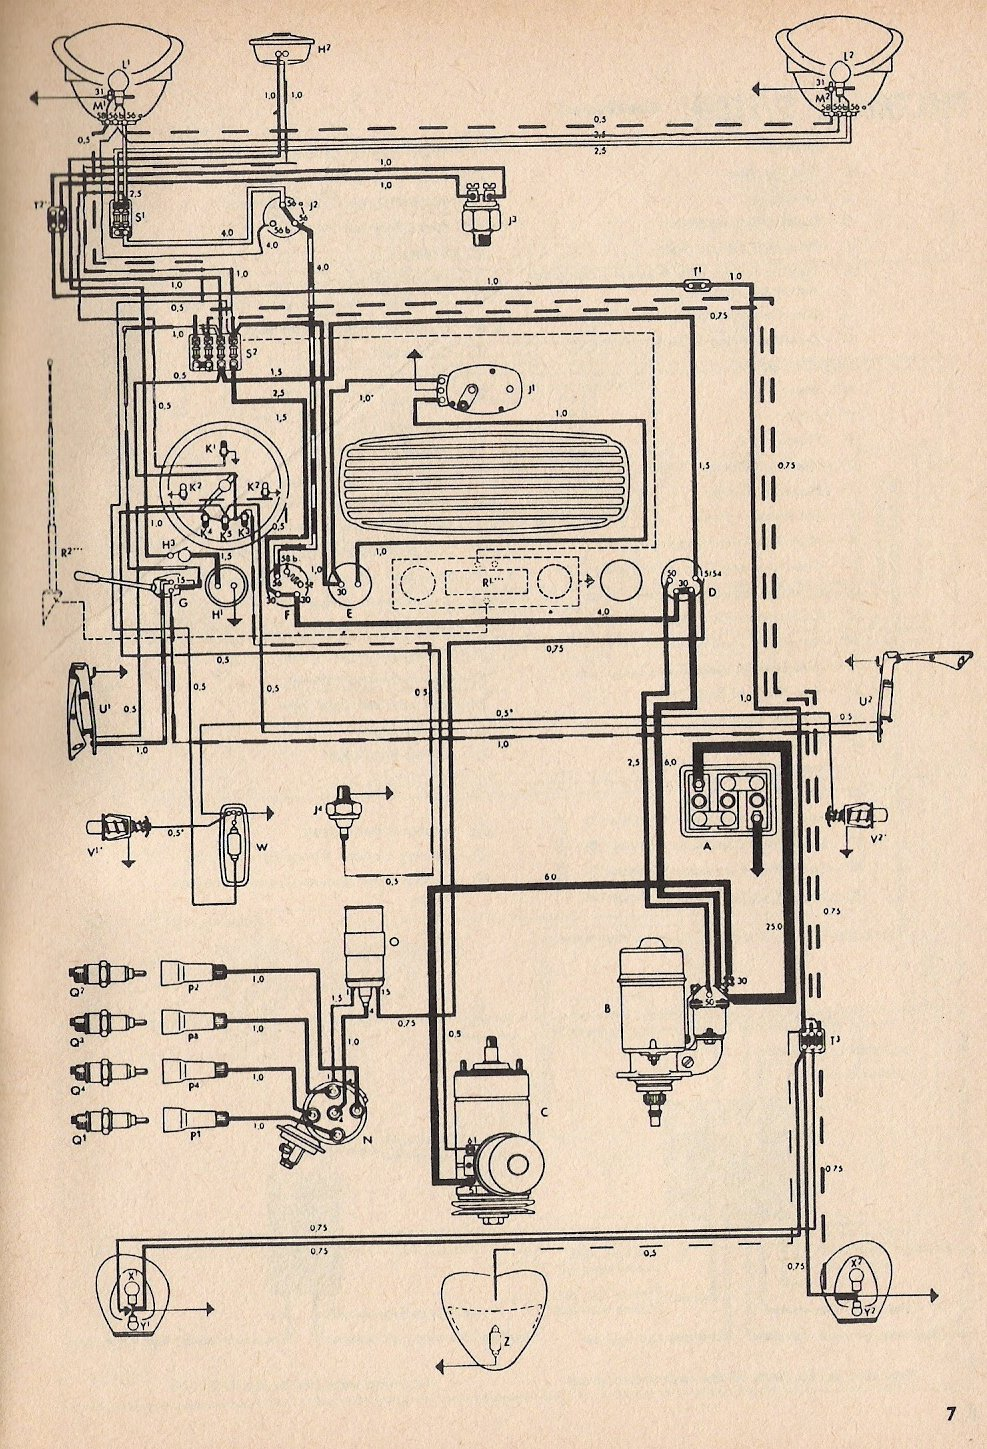 72 vw bus engine diagram 3 10 ms physiotherapie de \u2022 type 3 vw engine identification 1964 vw bus engine diagram 3 18 ms krankenfahrten de u2022 rh 3 18 ms krankenfahrten de vw bus engine schematic vw bus electrical diagrams